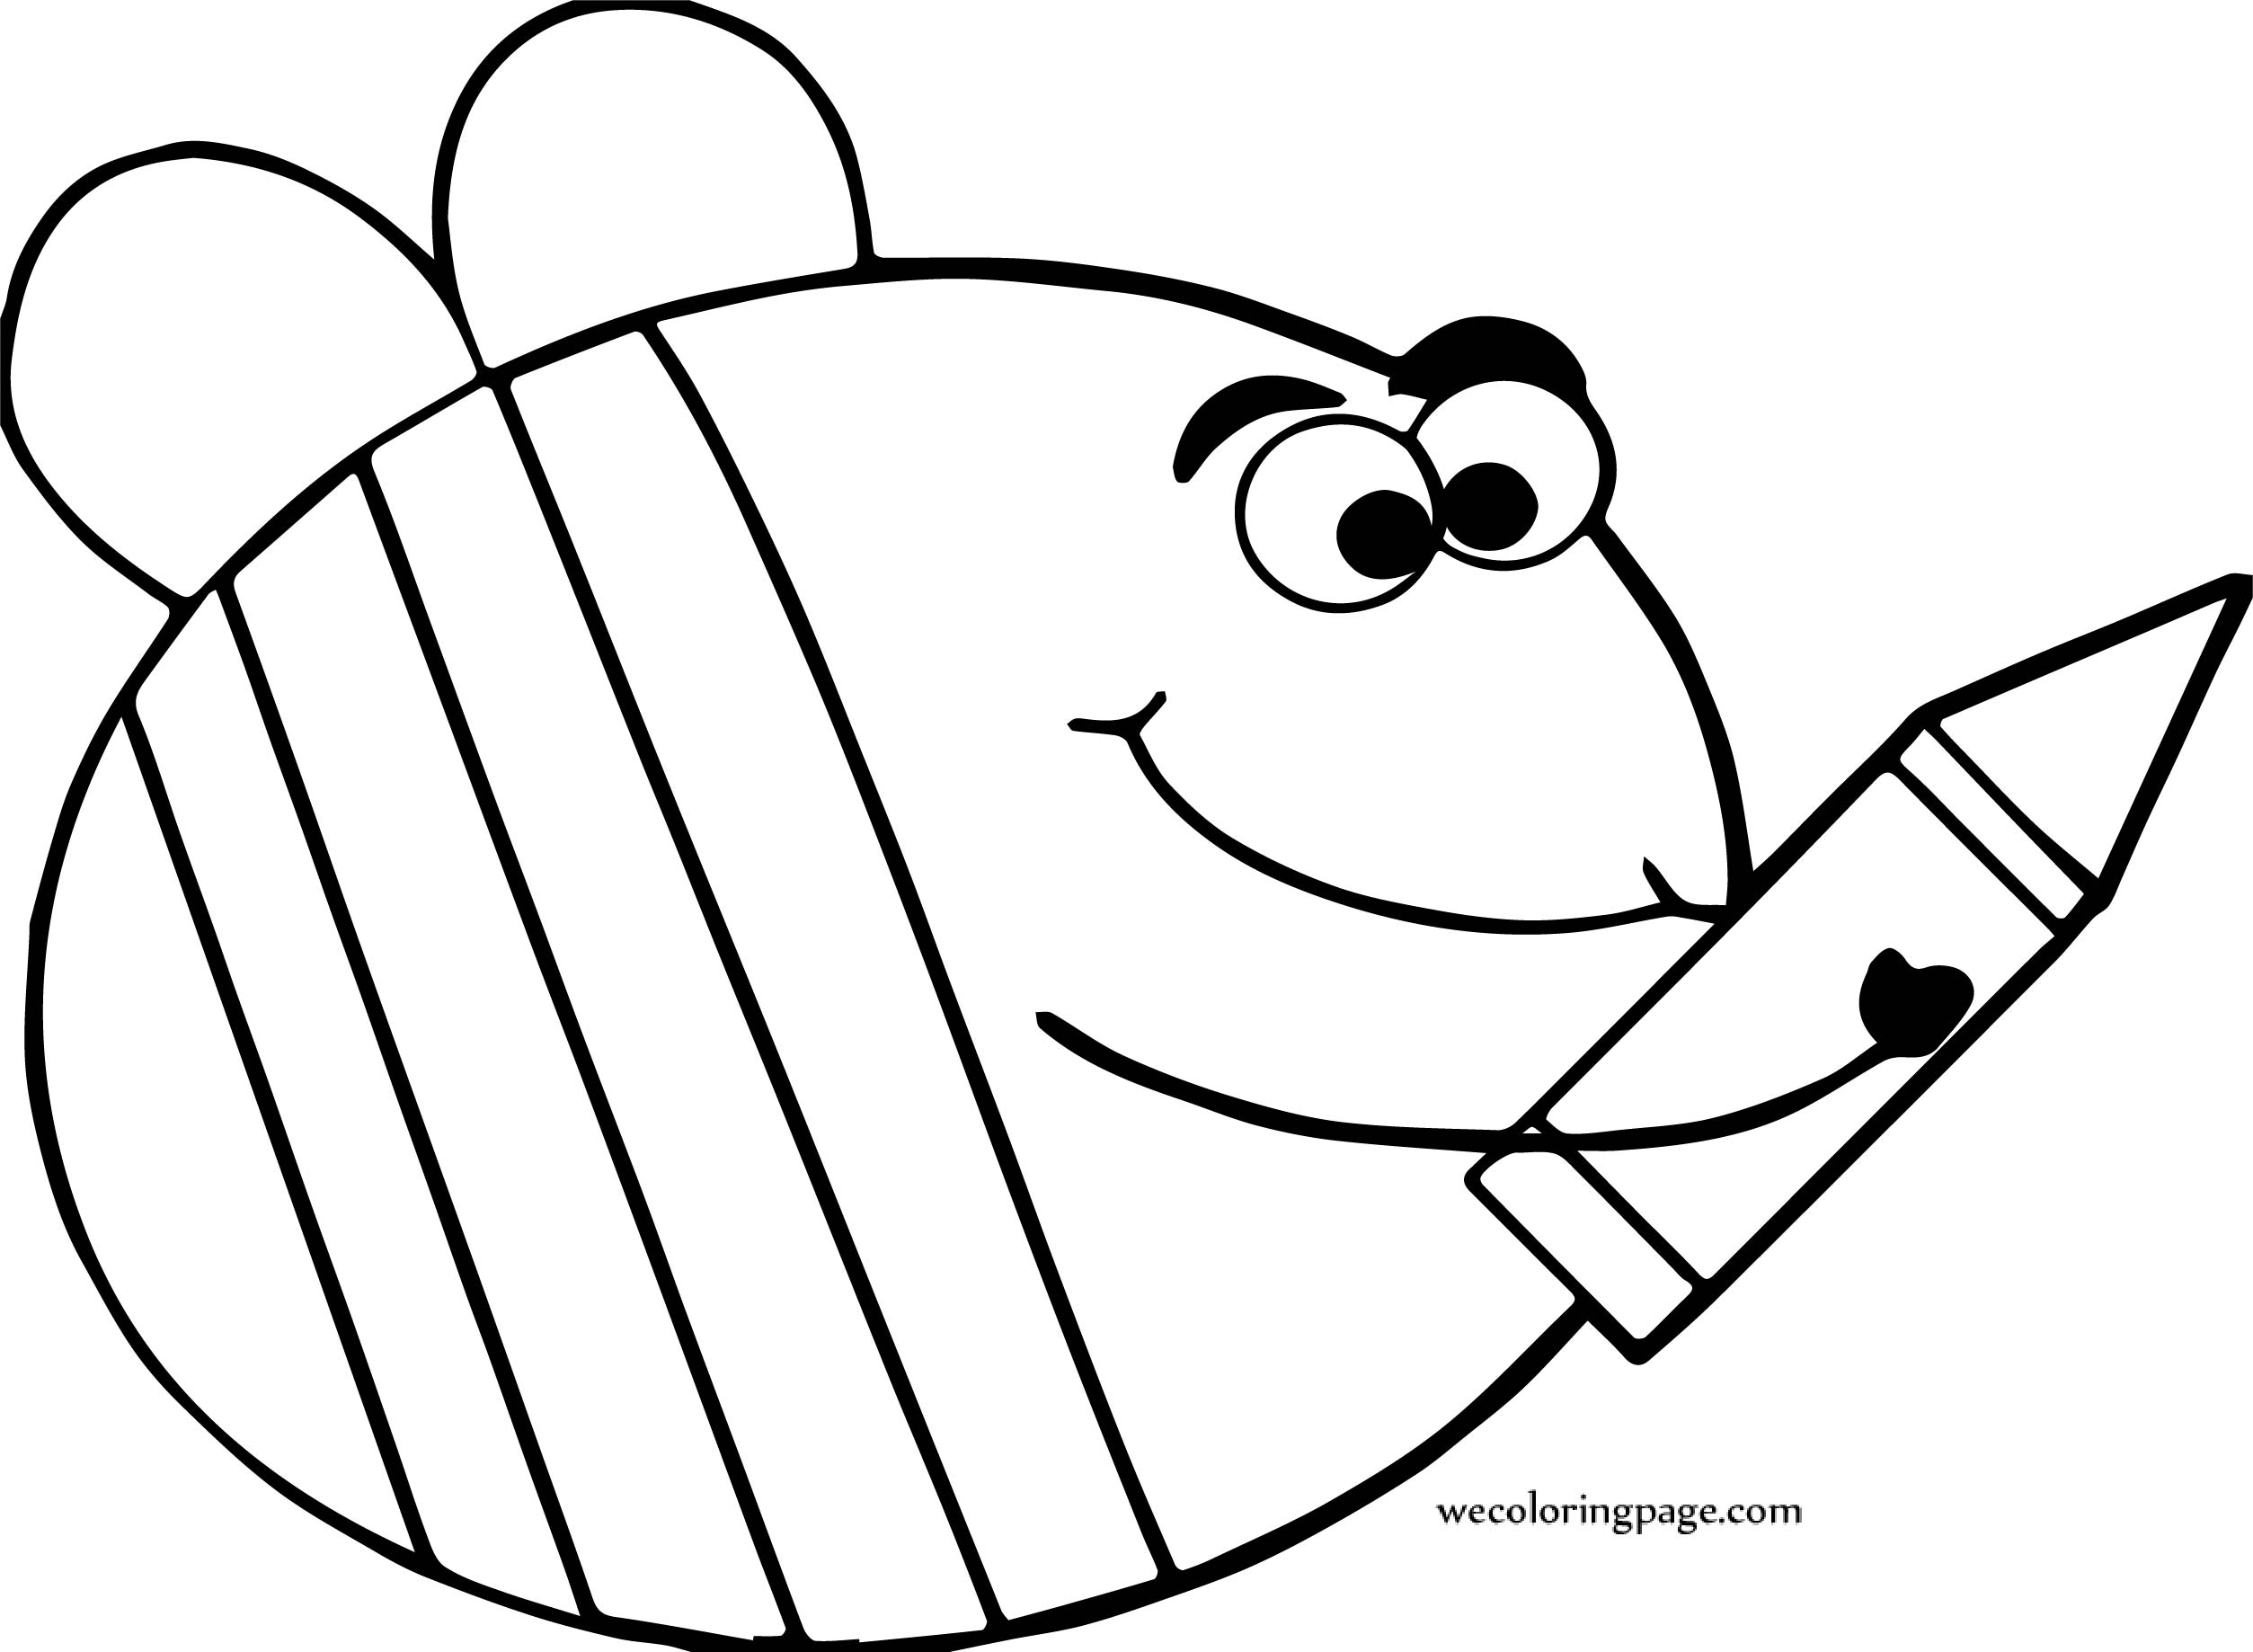 coloring pages crayons - bee crayon coloring page